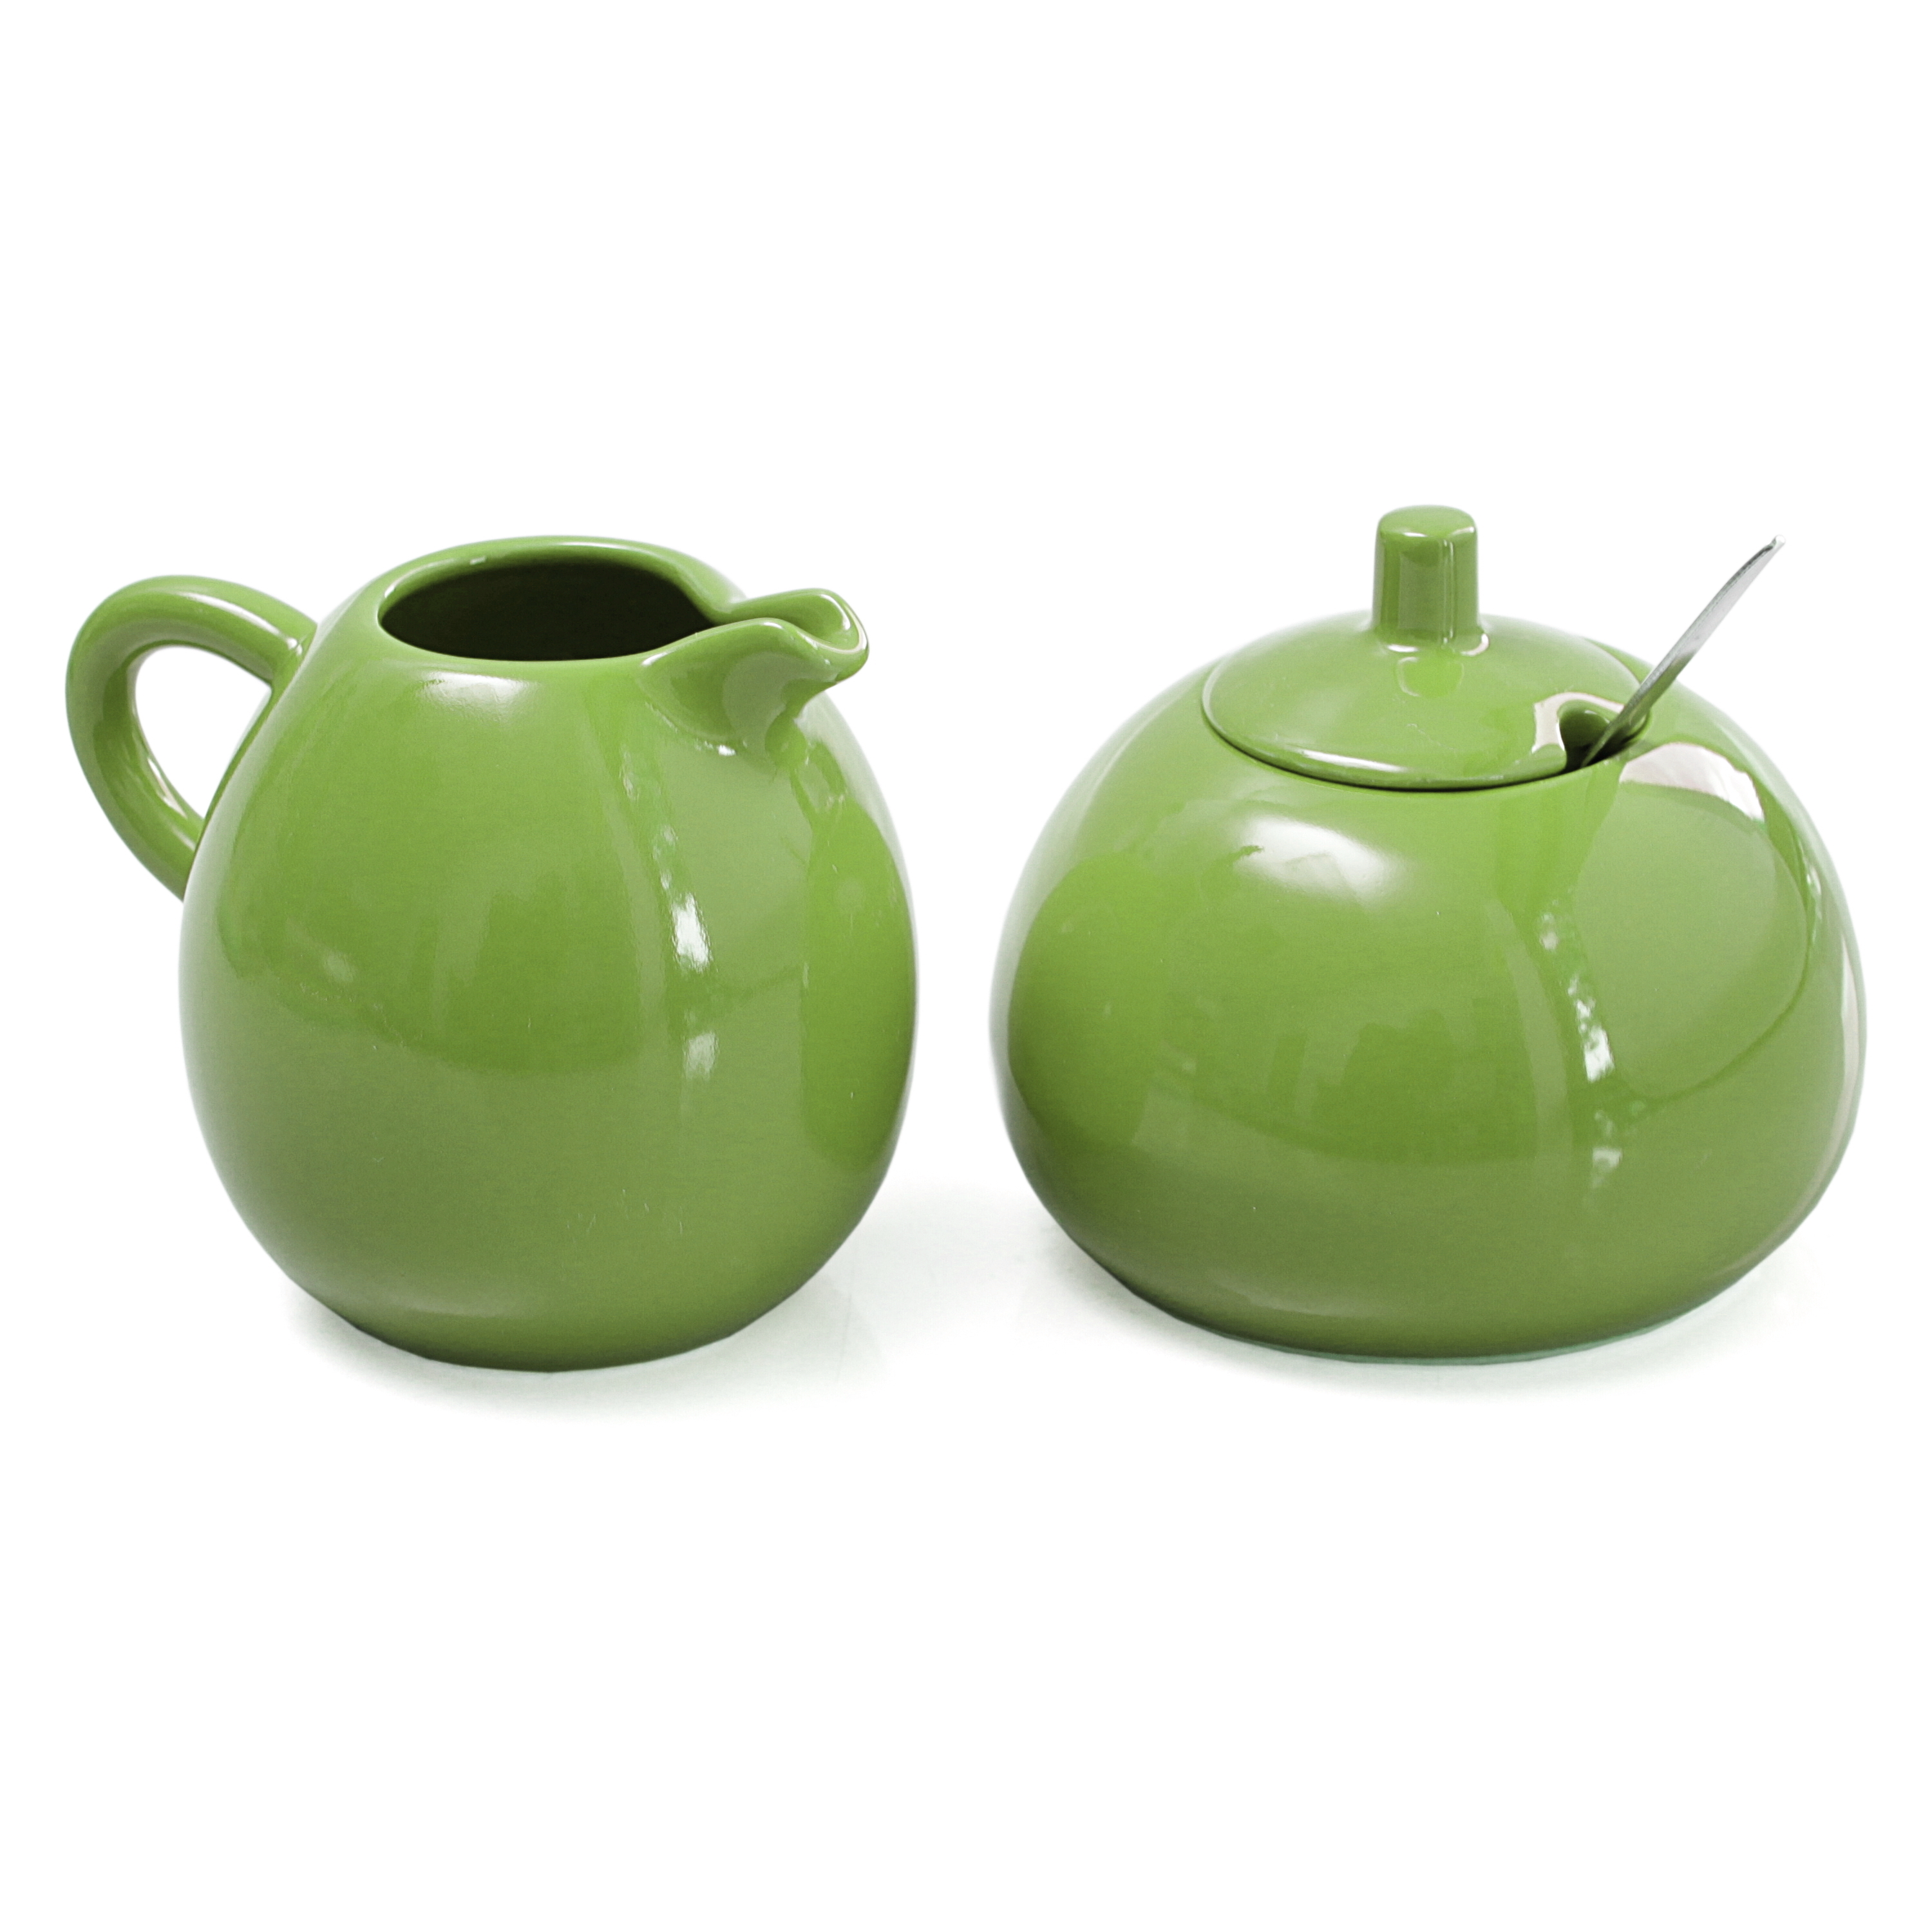 Omniware Citron Stoneware 5 Ounce Sugar and Creamer Set with Stainless Steel Spoon